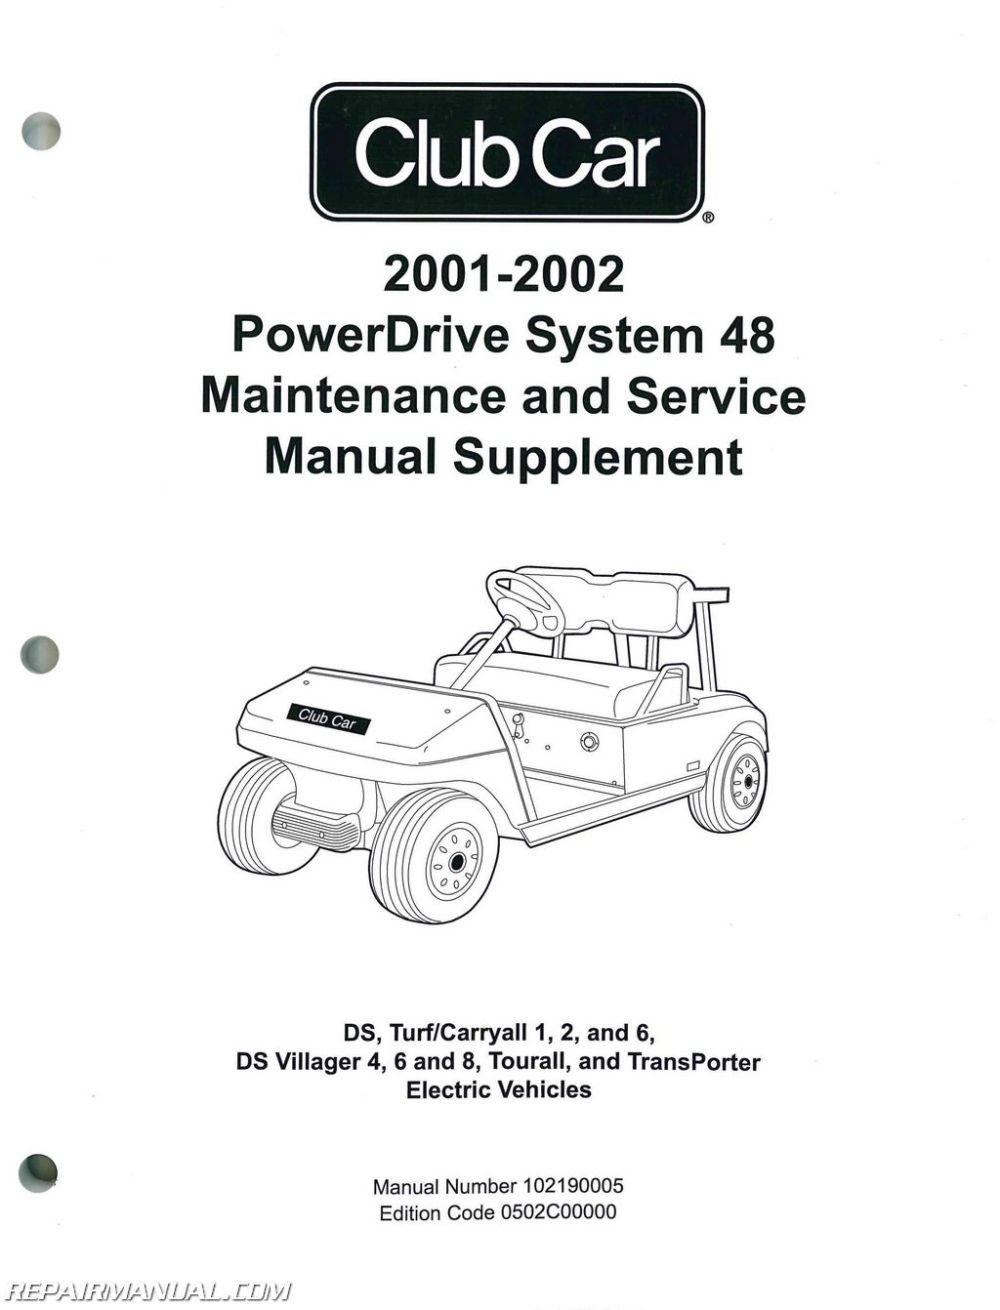 medium resolution of 2001 2002 club car powerdrive system 48 maintenance and service manual supplement jpg